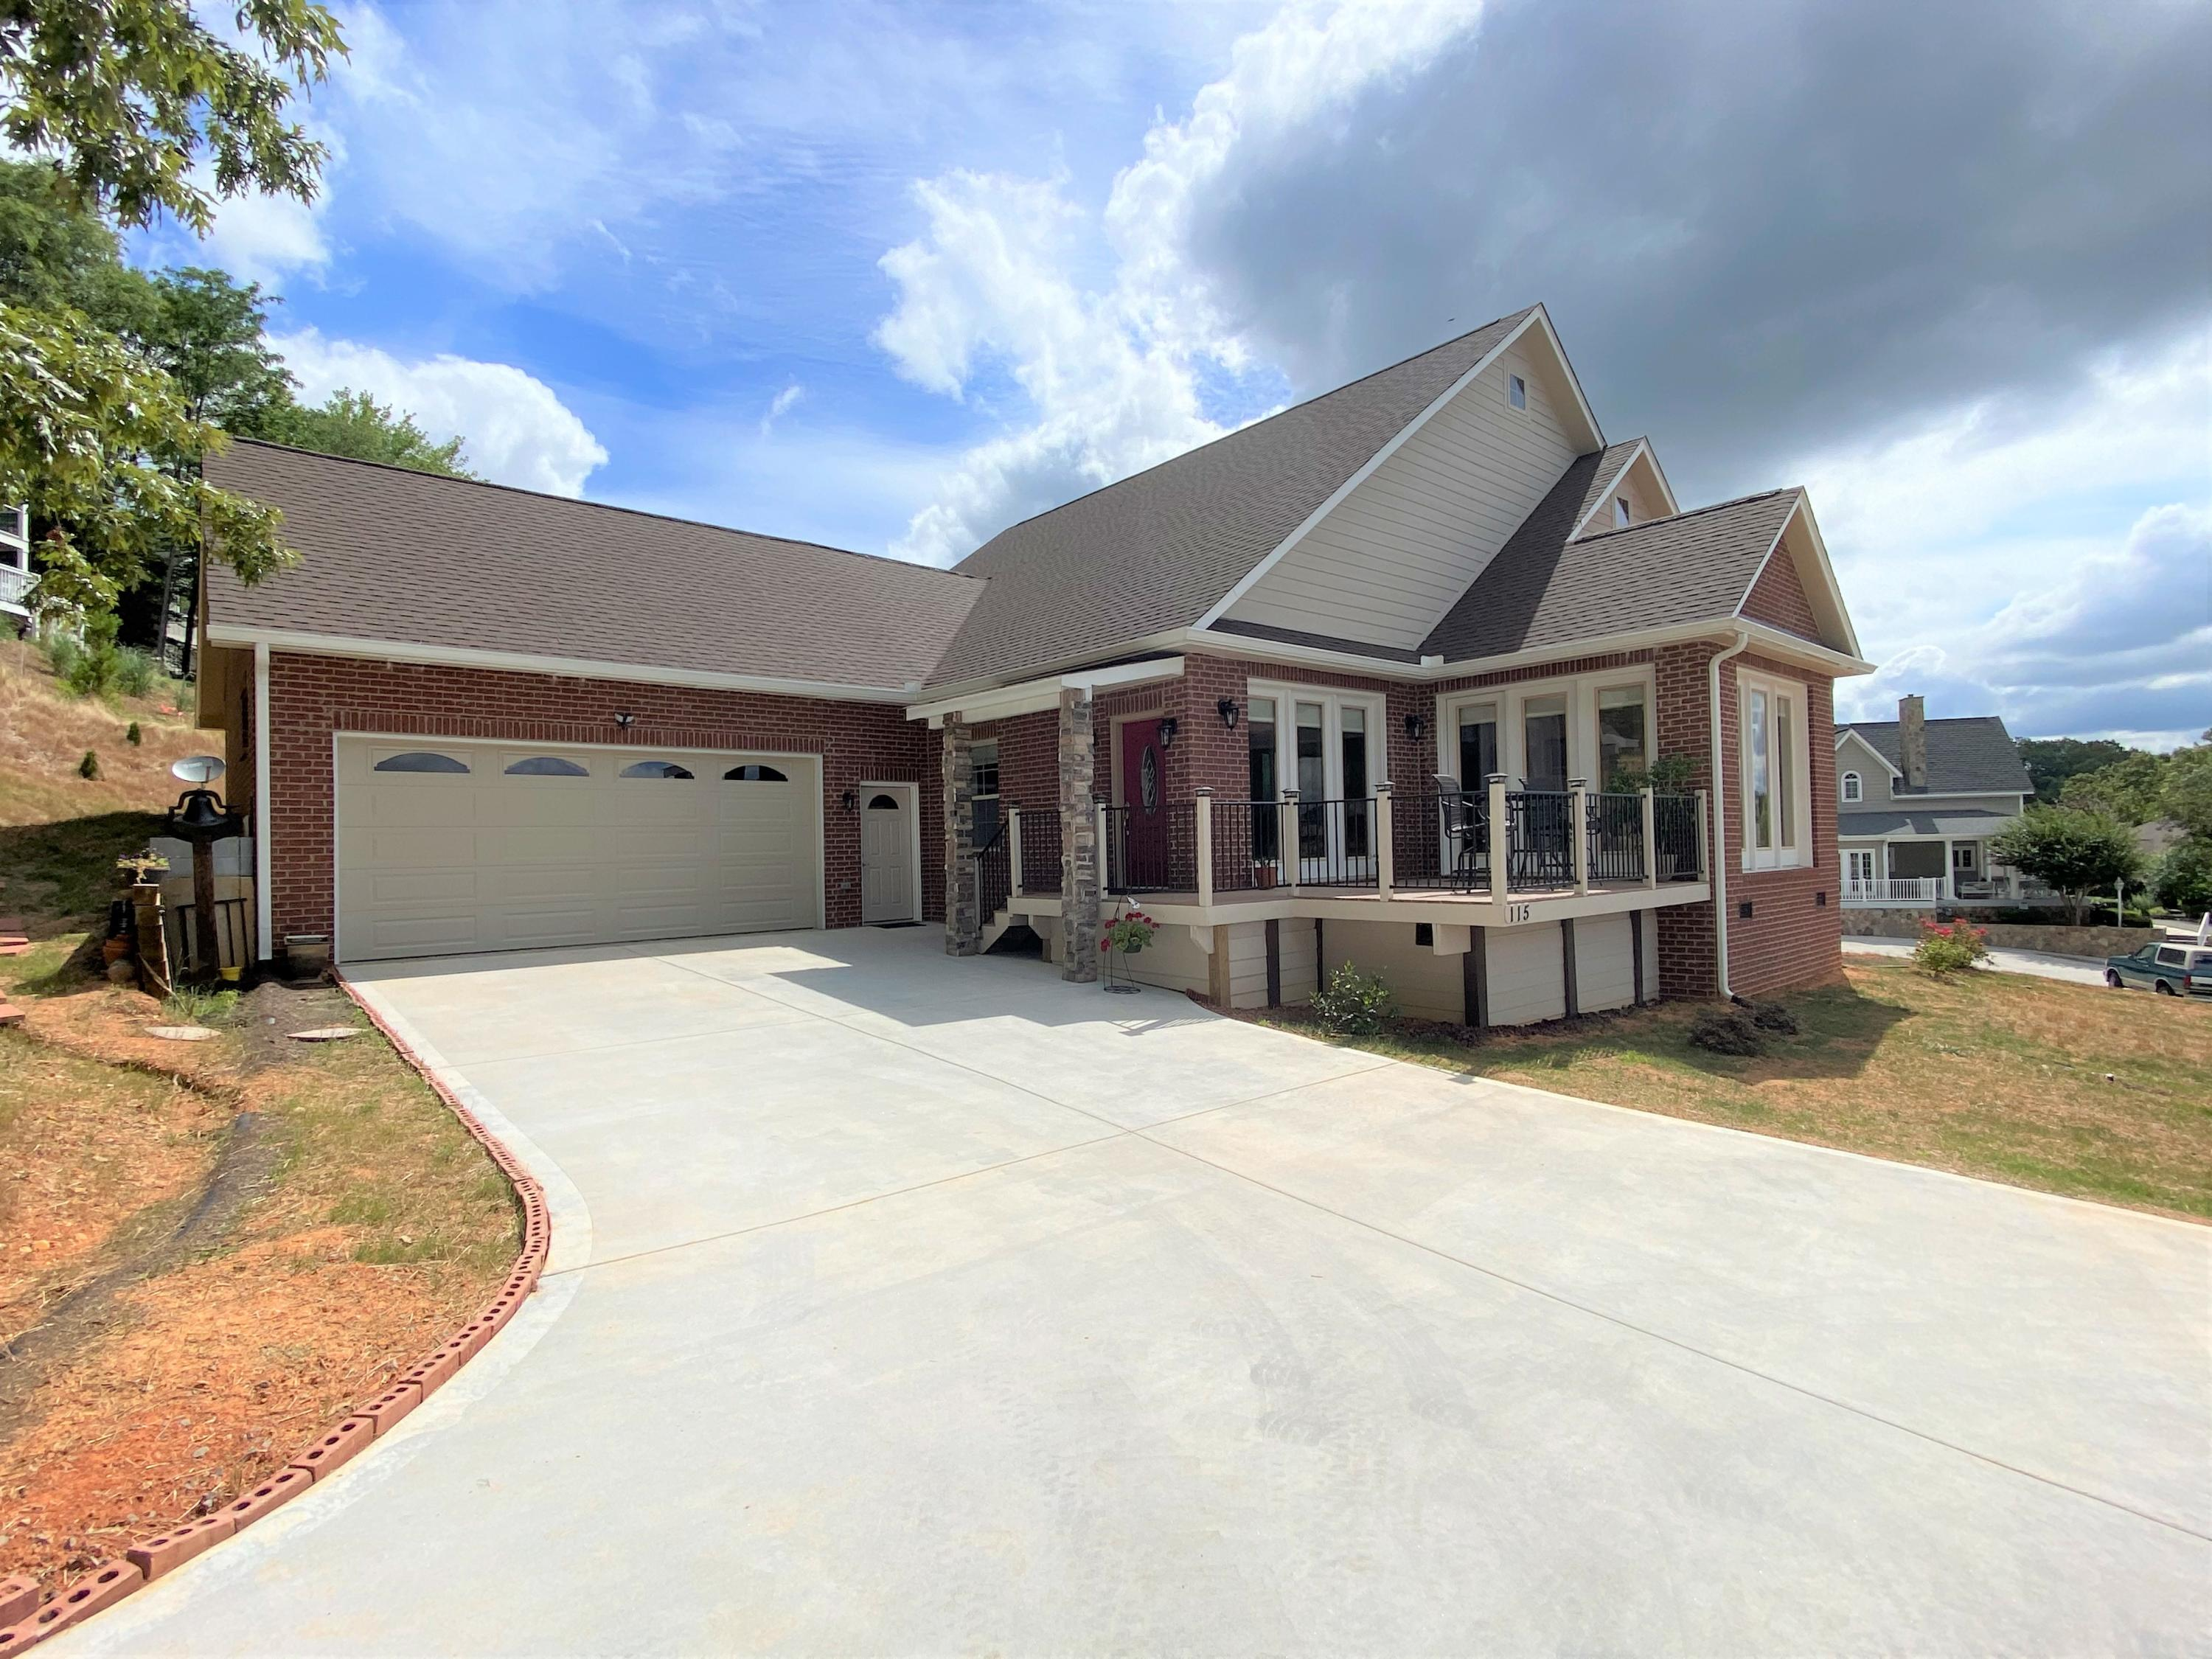 115 Southcove Drive, Greenback, Tennessee 37742, 3 Bedrooms Bedrooms, ,4 BathroomsBathrooms,Single Family,For Sale,Southcove,1133174